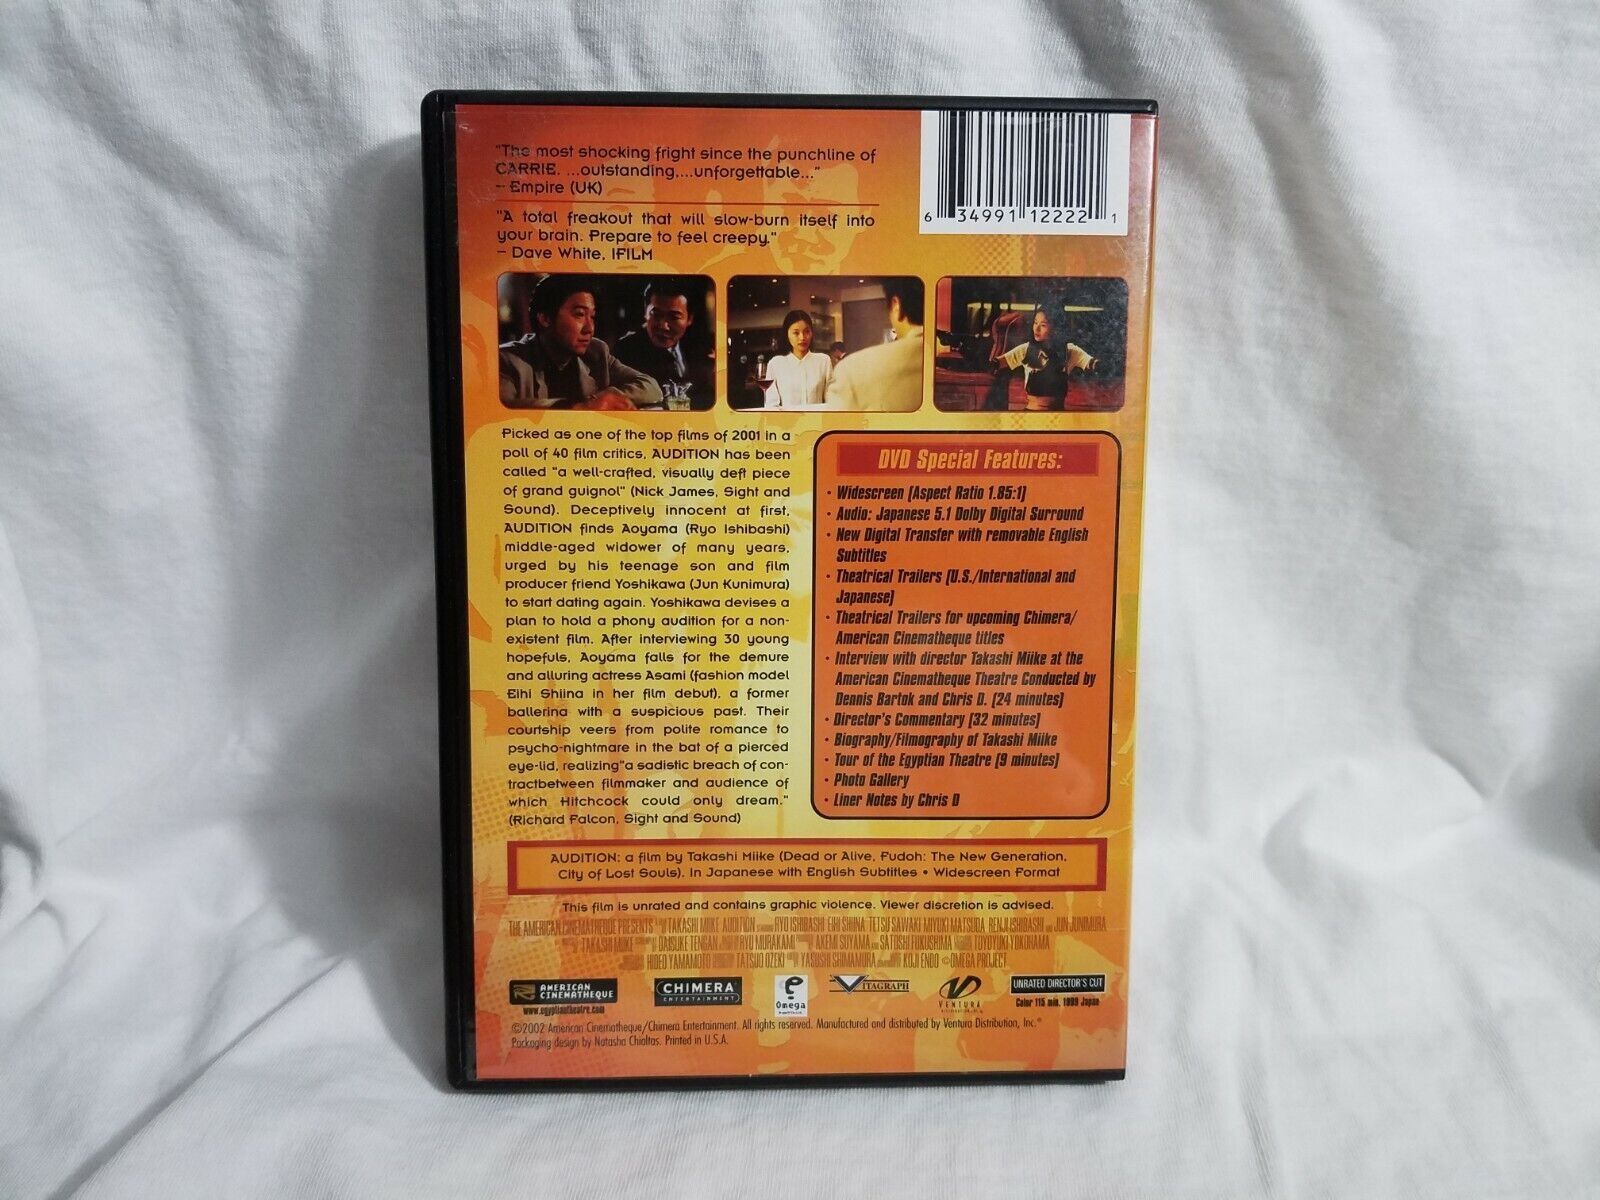 Audition DVD Rare, OOP Director s Cut Takashi Miike Very Good Condition  - $9.95